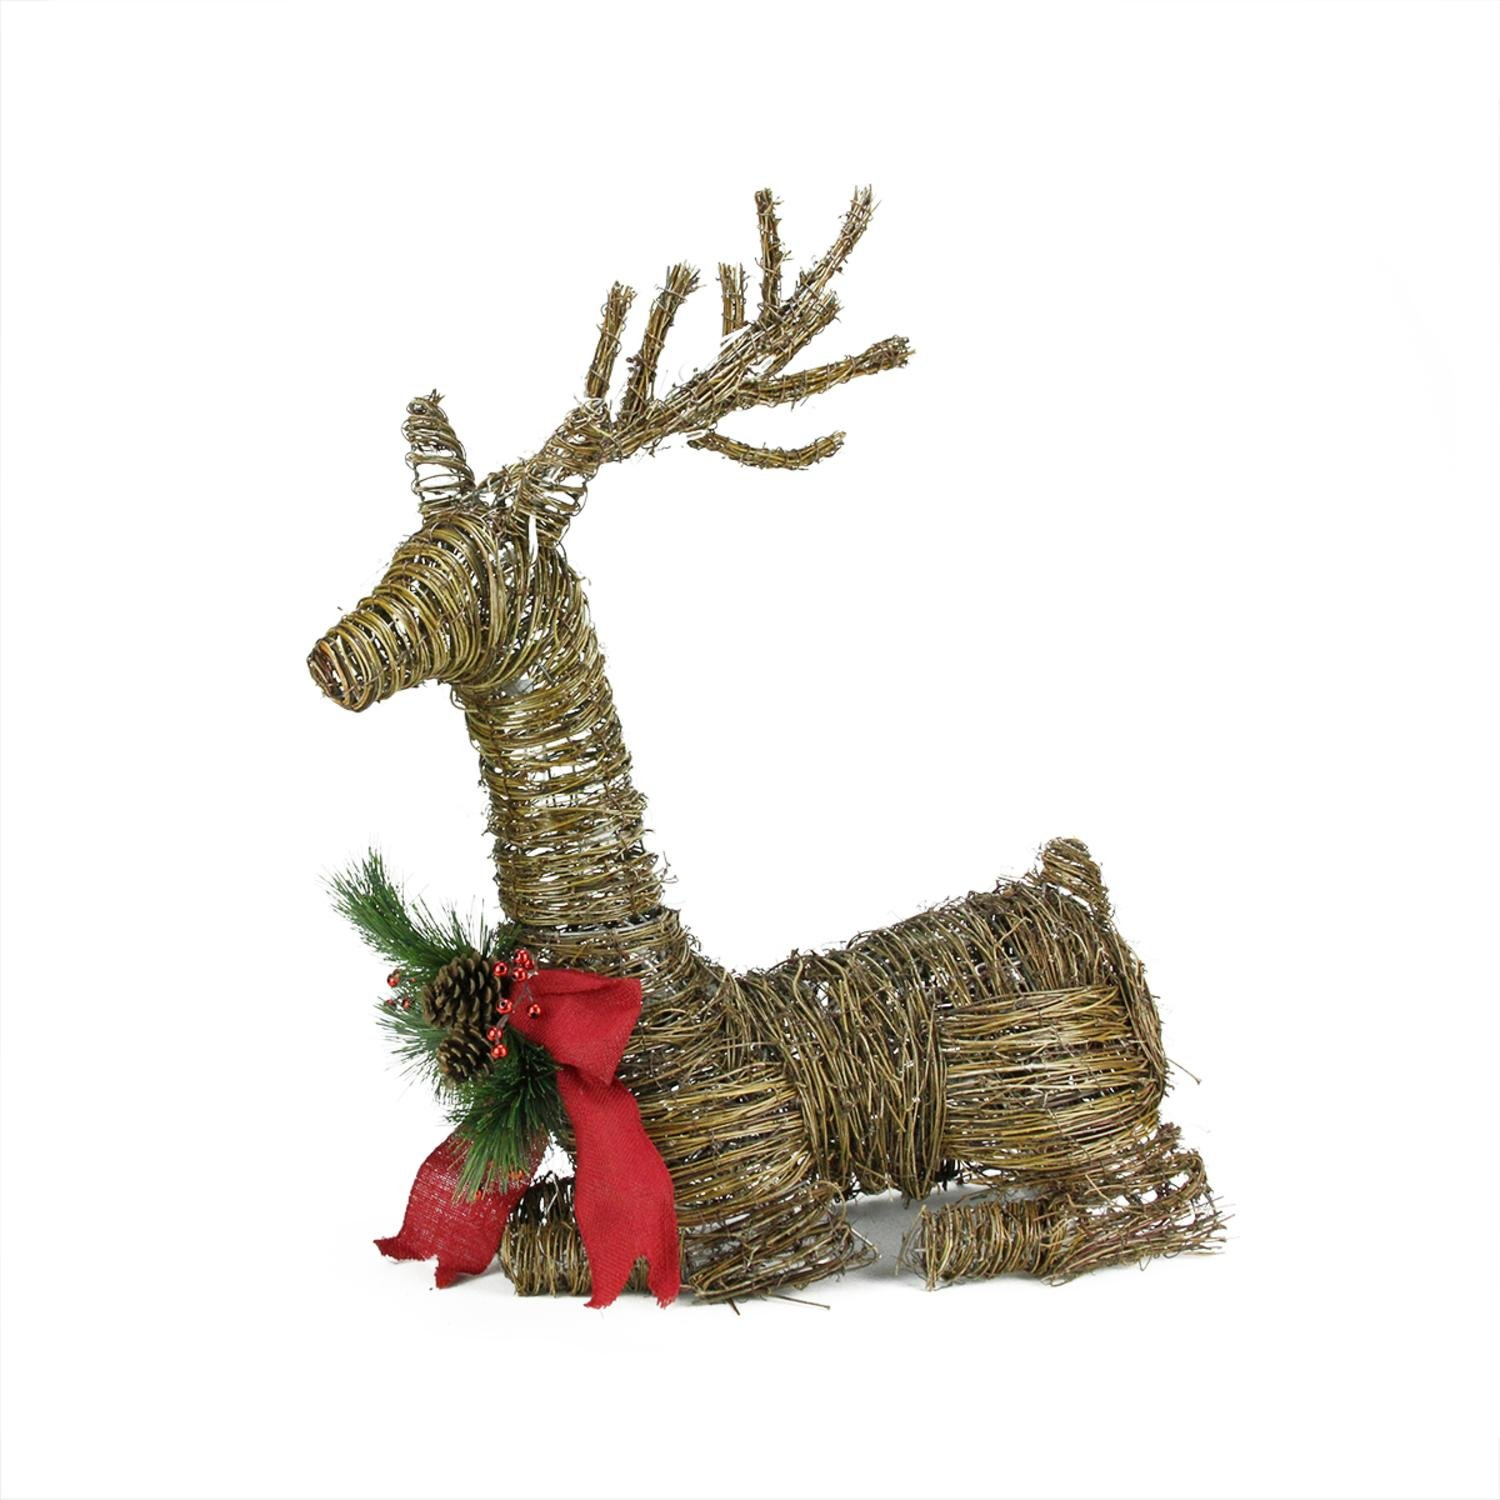 Lighted moose christmas yard decoration for Holiday lawn decorations